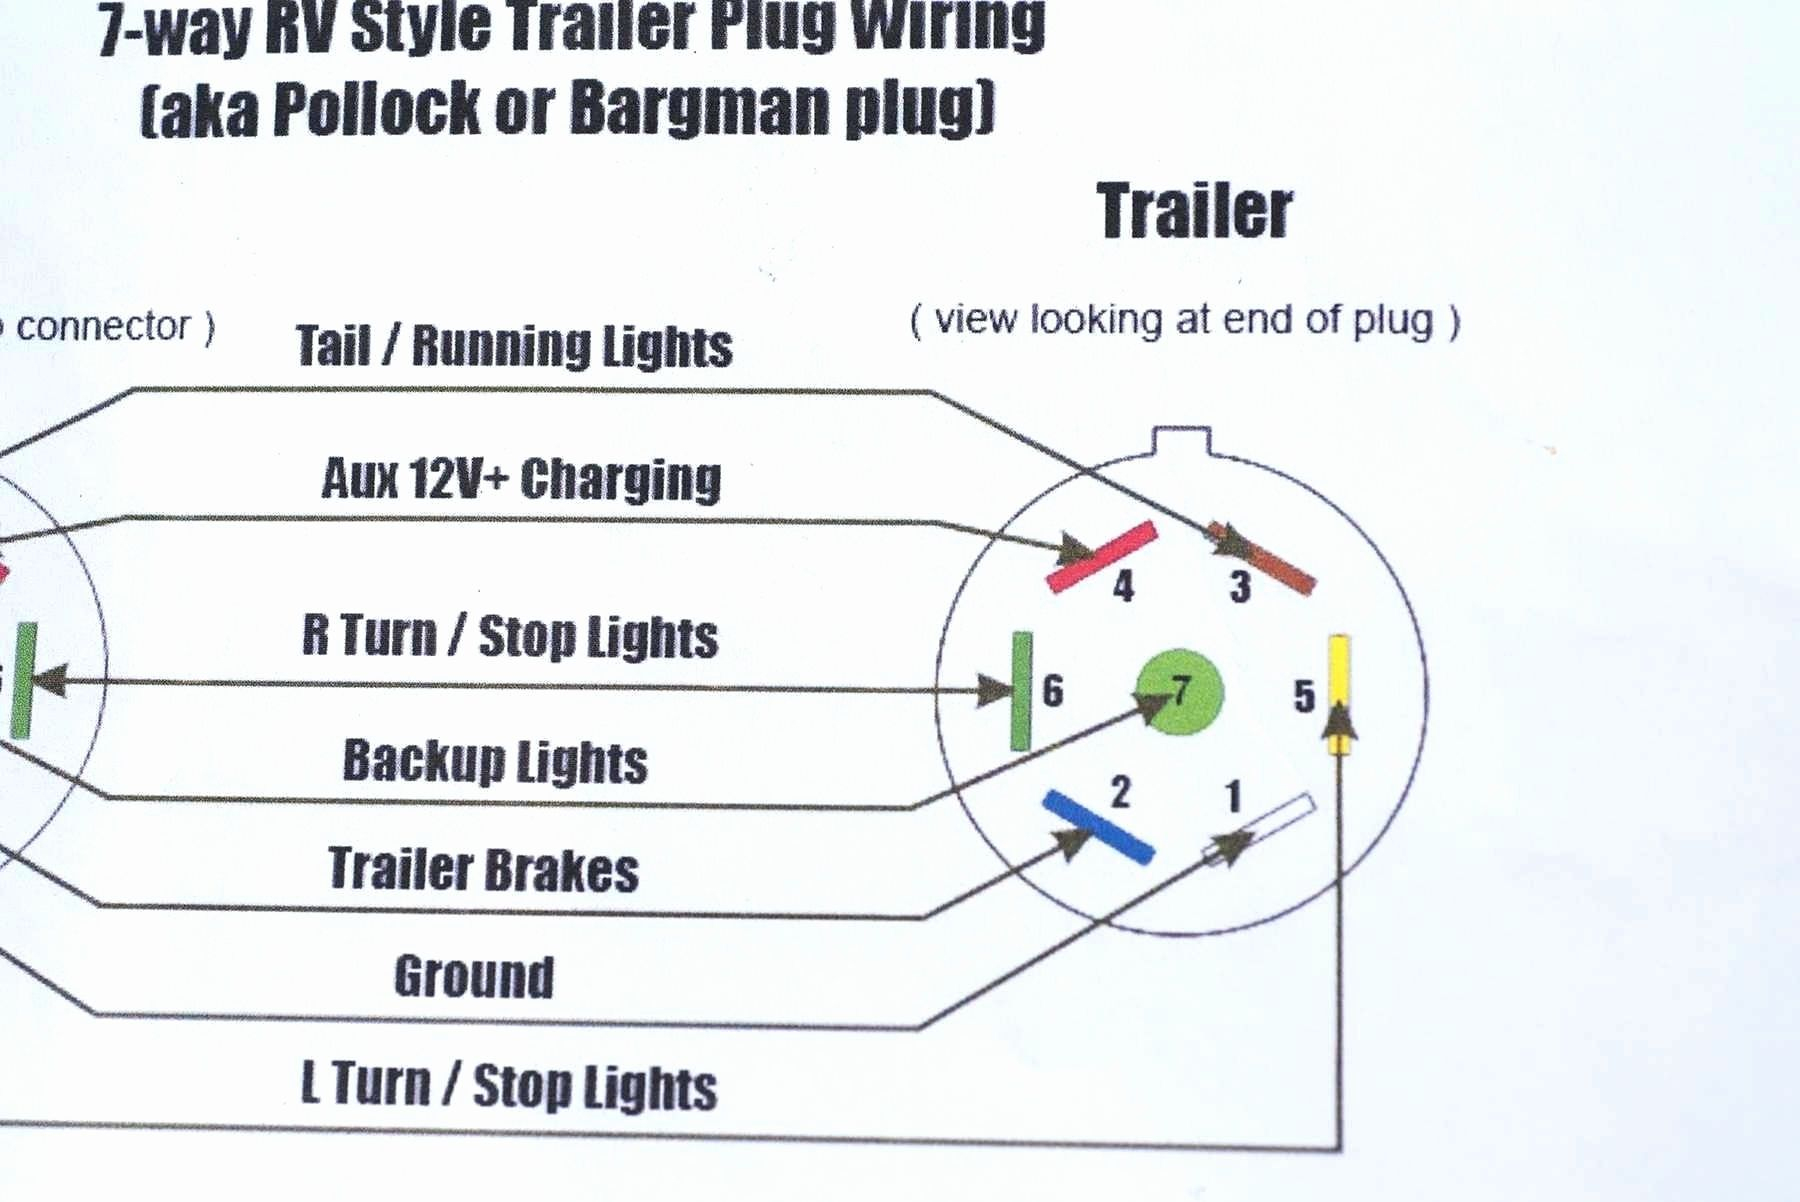 Enjoyable Chevrolet Trailer Wiring Basic Electronics Wiring Diagram Wiring Cloud Vieworaidewilluminateatxorg